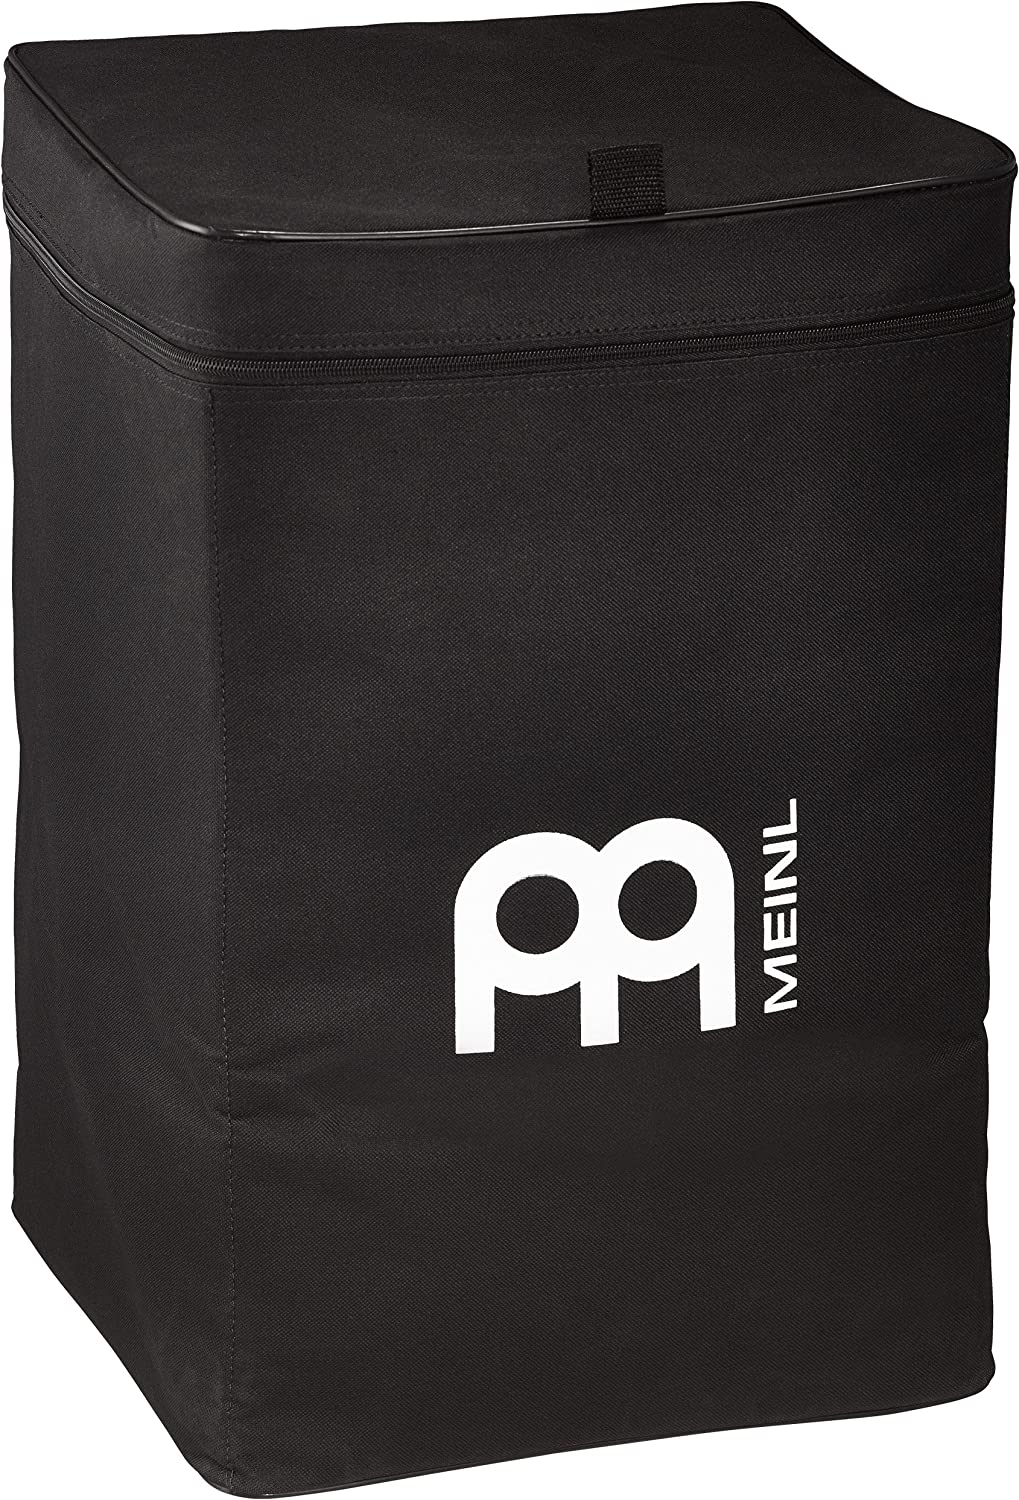 Meinl Cajon Box Drum Backpack Bag - Standard Size For Most Cajons